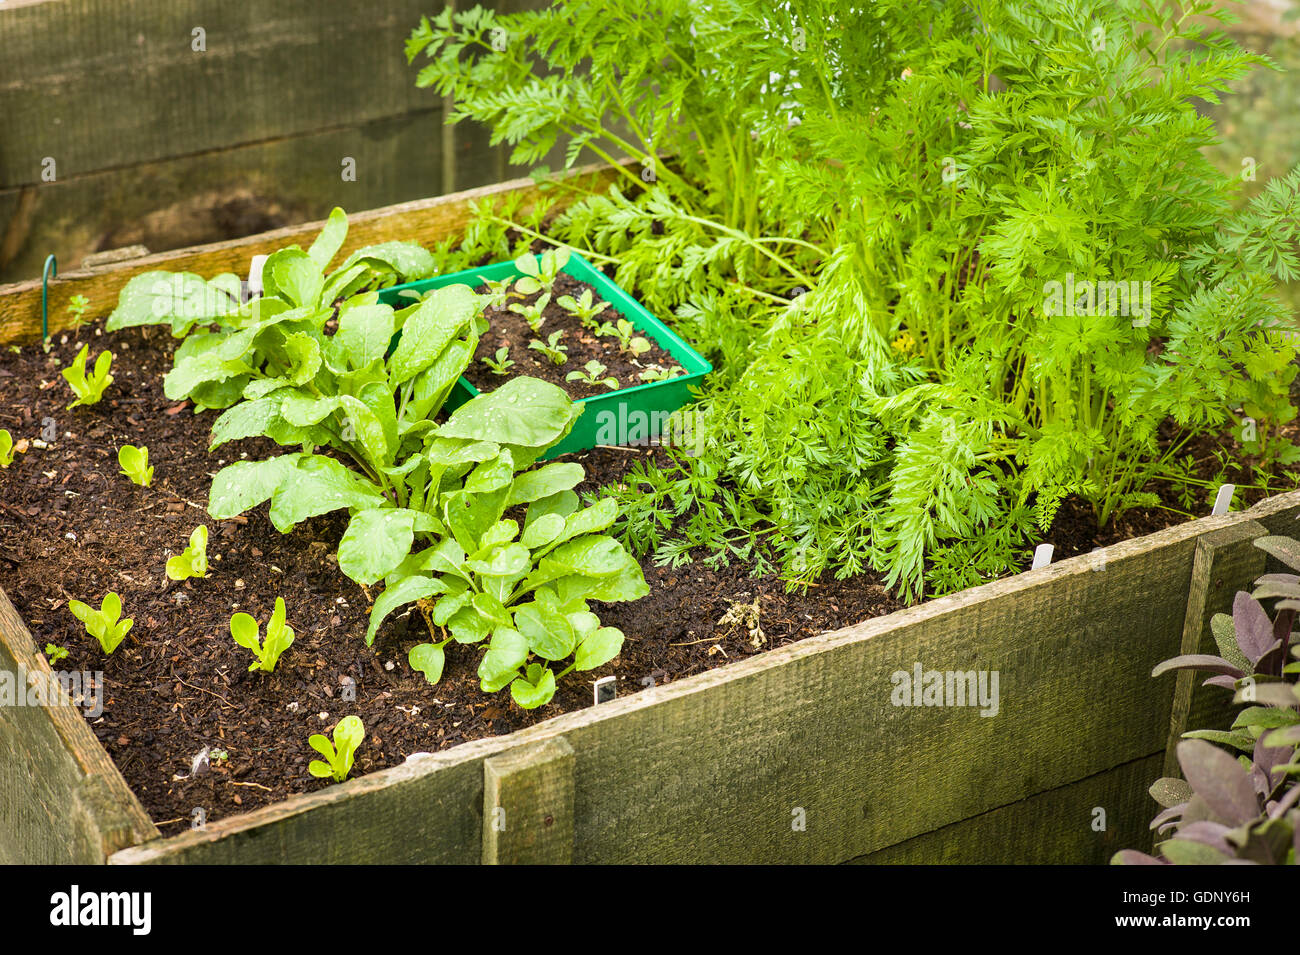 Raised wooden planter filled with growing salad vegetable - Stock Image